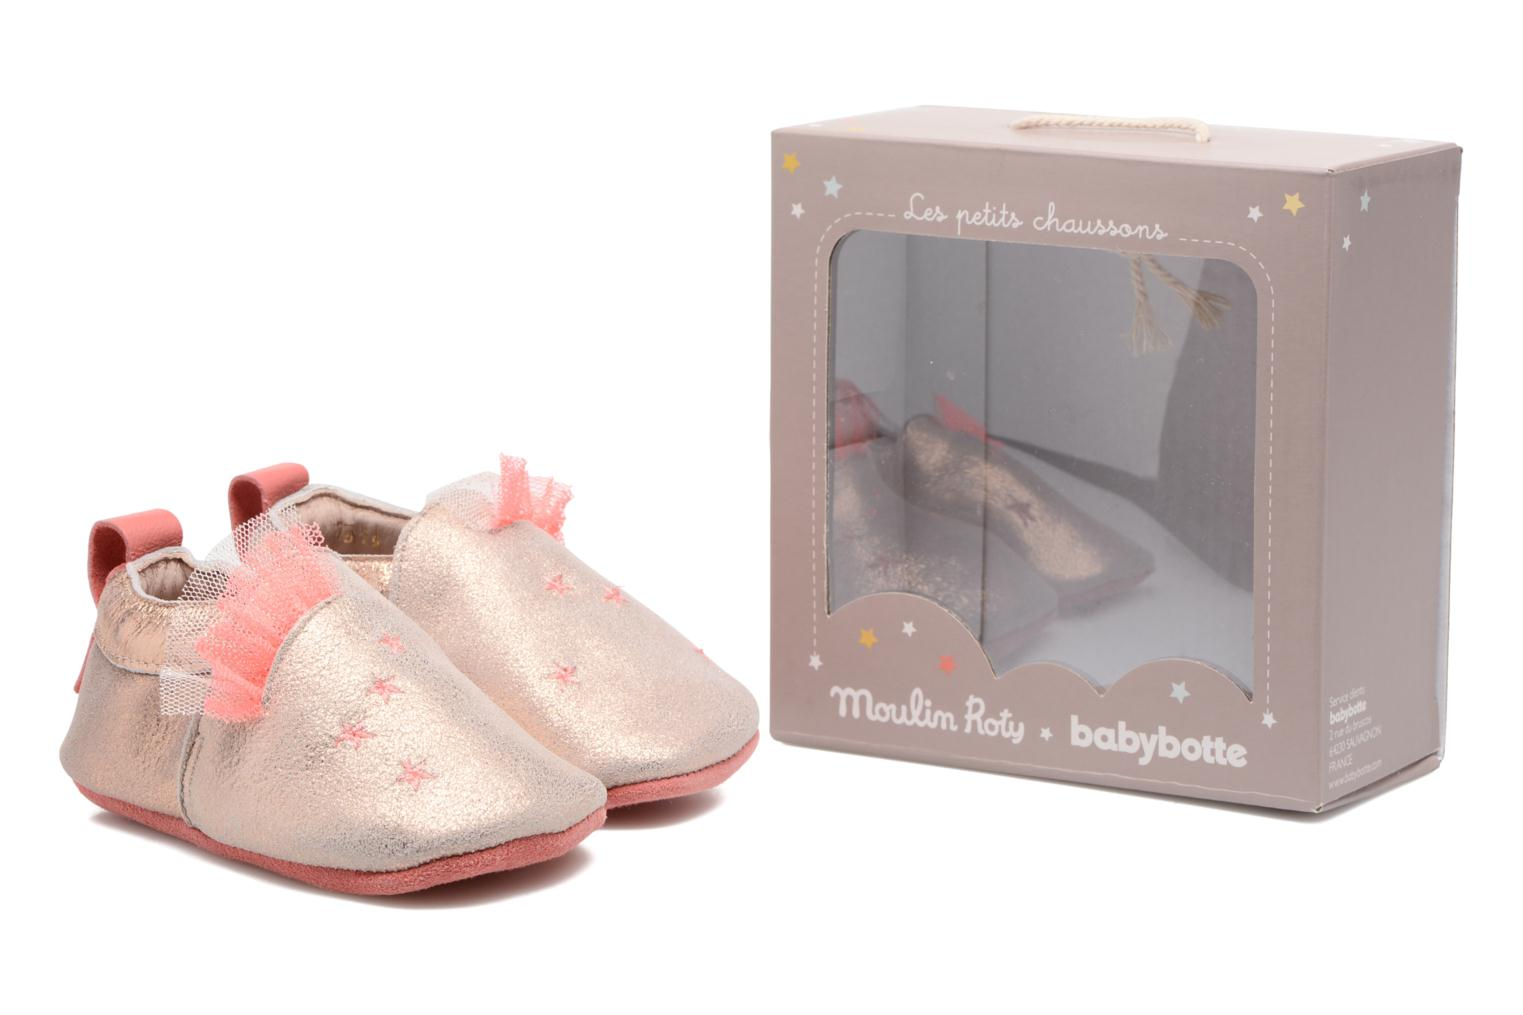 Chaussons Babybotte Etoiles - Moulin Roty Or et bronze vue 3/4